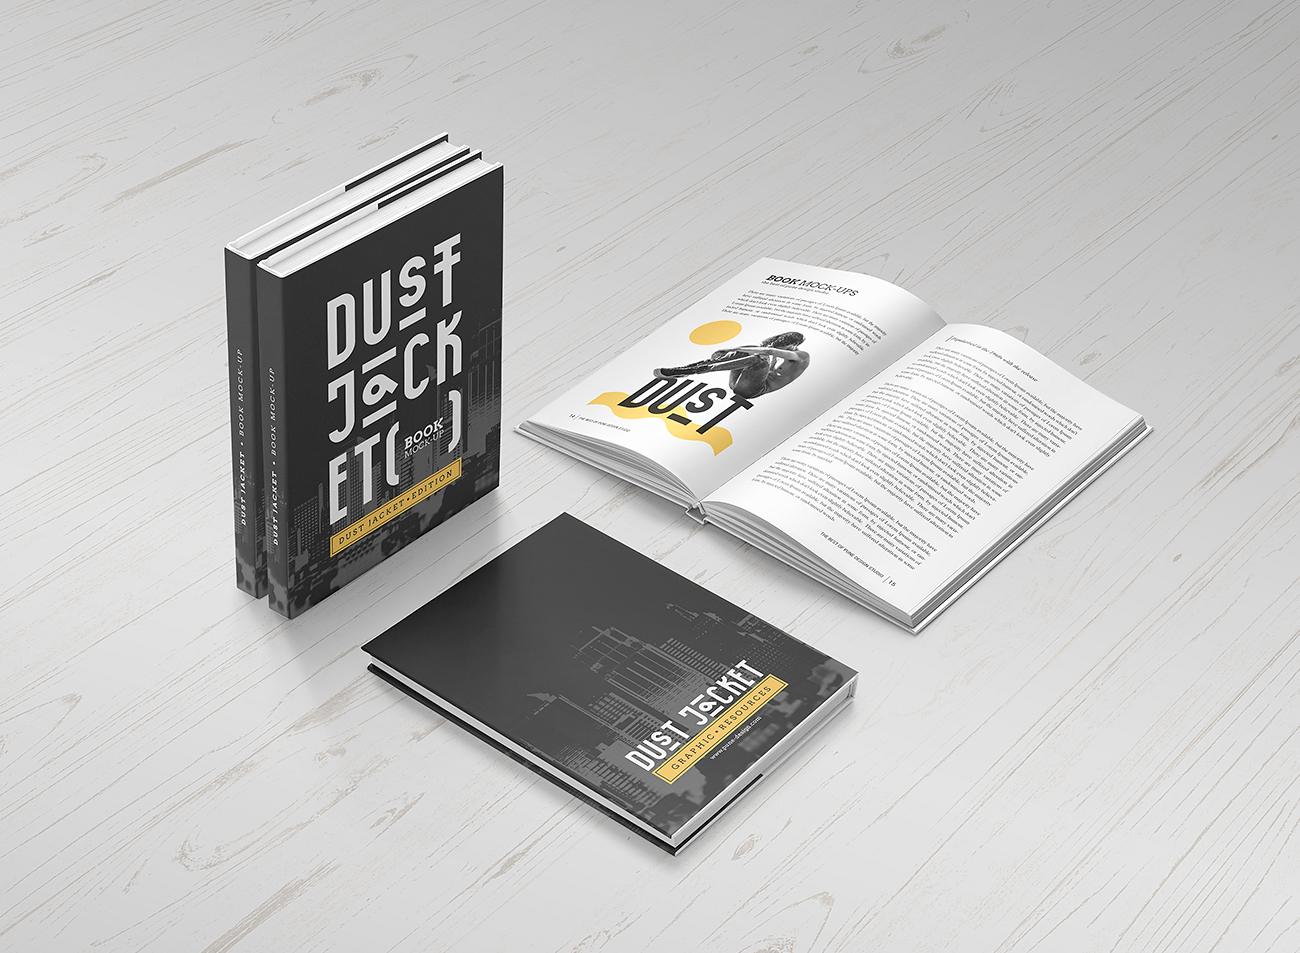 Book-mockup-dust-jacket-010